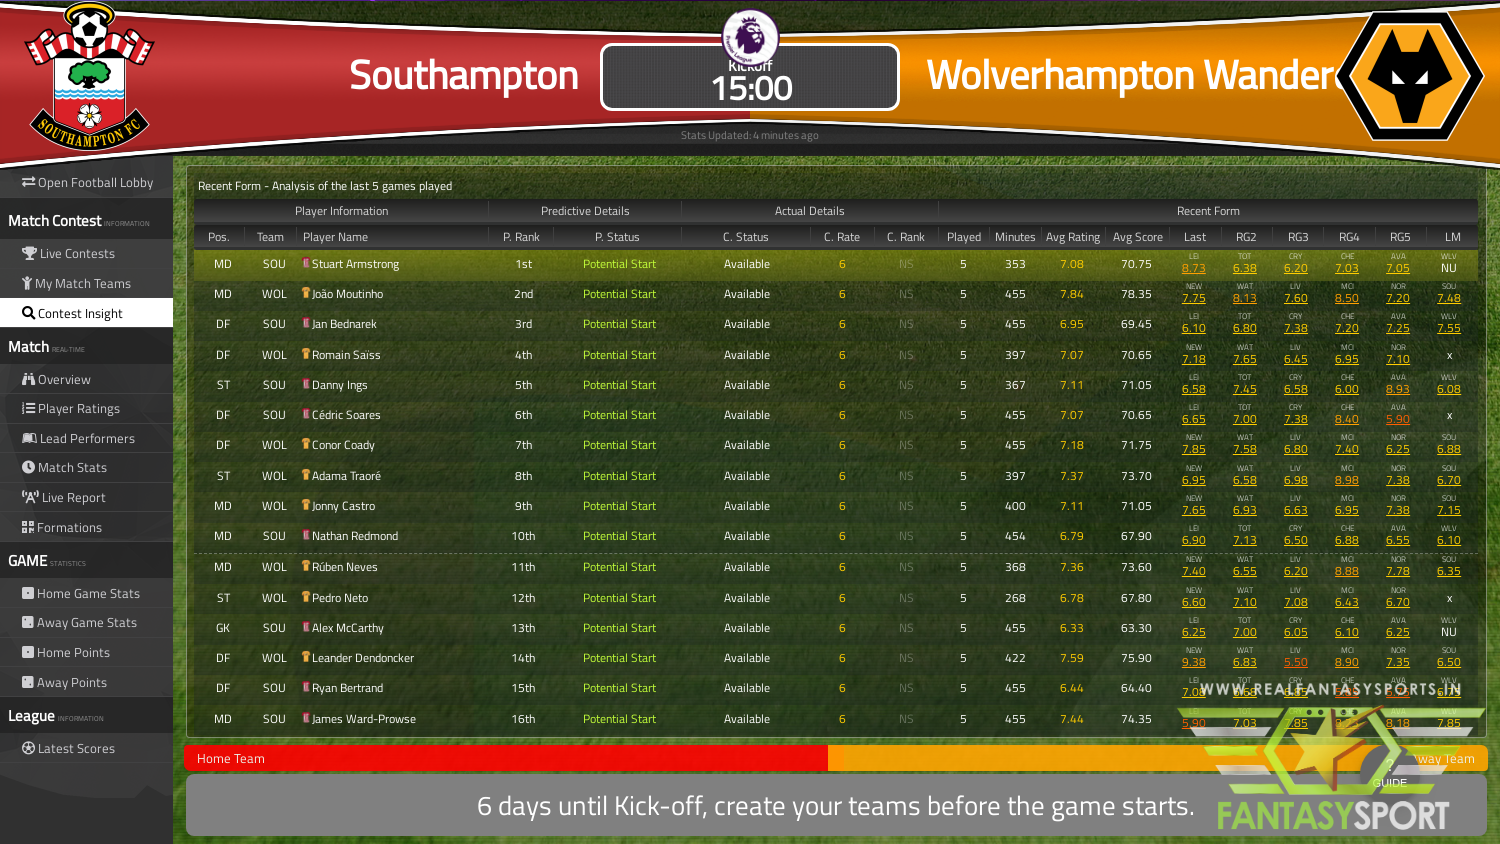 Southampton Vs Wolverhampton Wanderers Fantasy Football Team